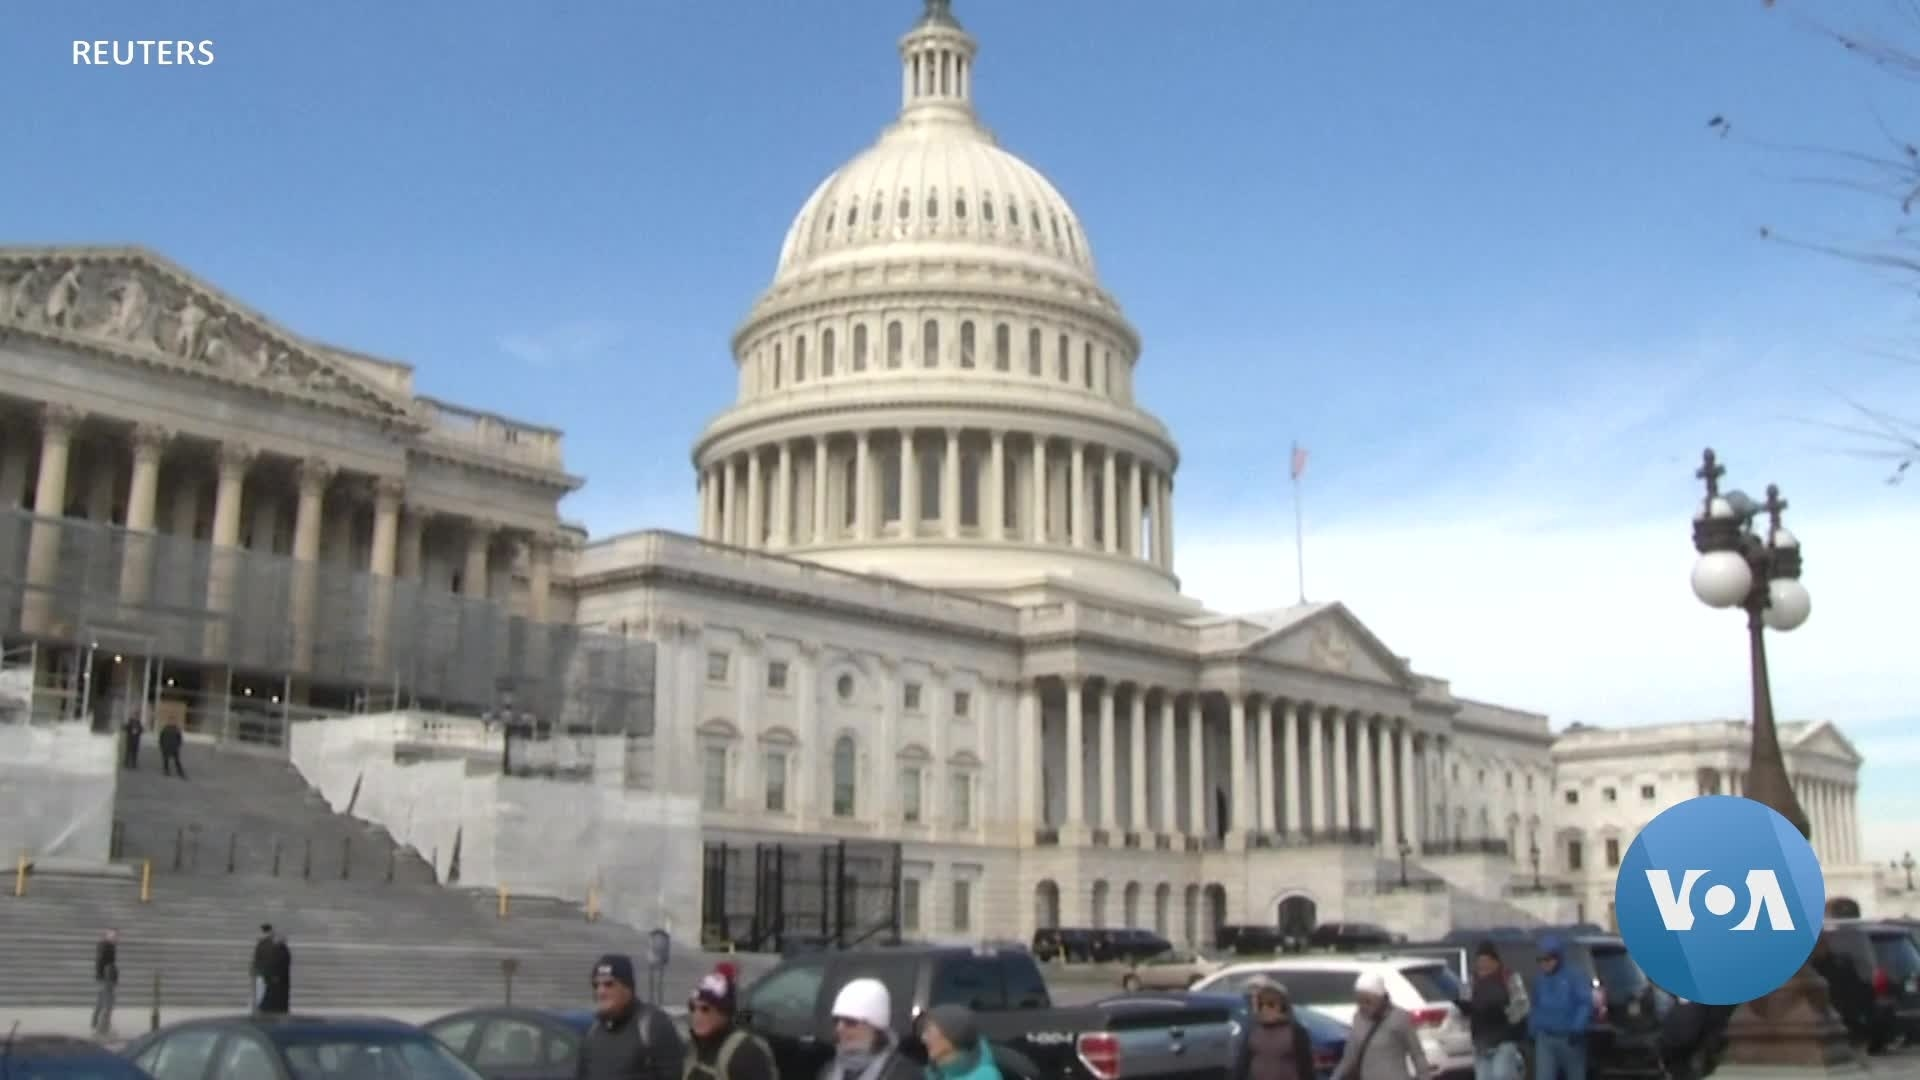 US Lawmakers Try to Bridge Differences on New COVID Relief Bill as Deadline Looms